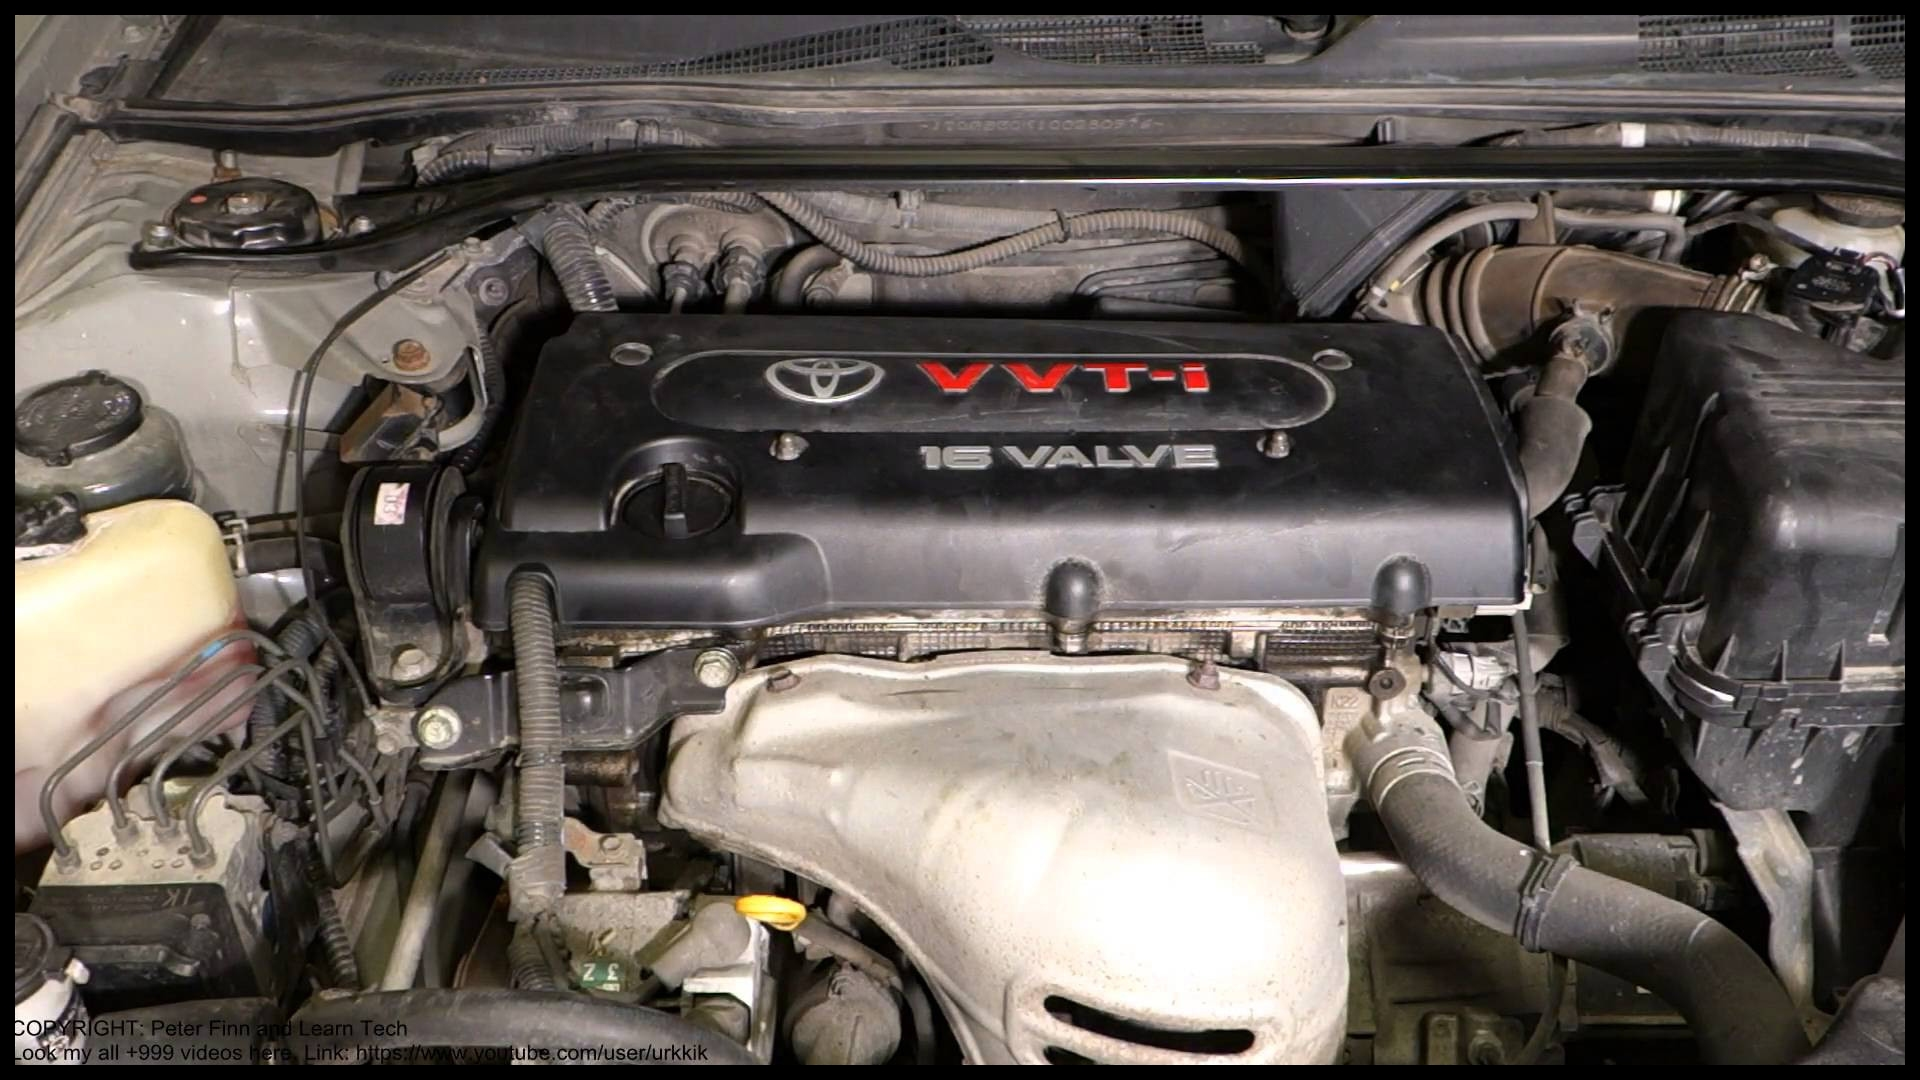 Captivating 2002 toyota Camry Engine for Sale where is My toyota Camry 2 4 Vvt I